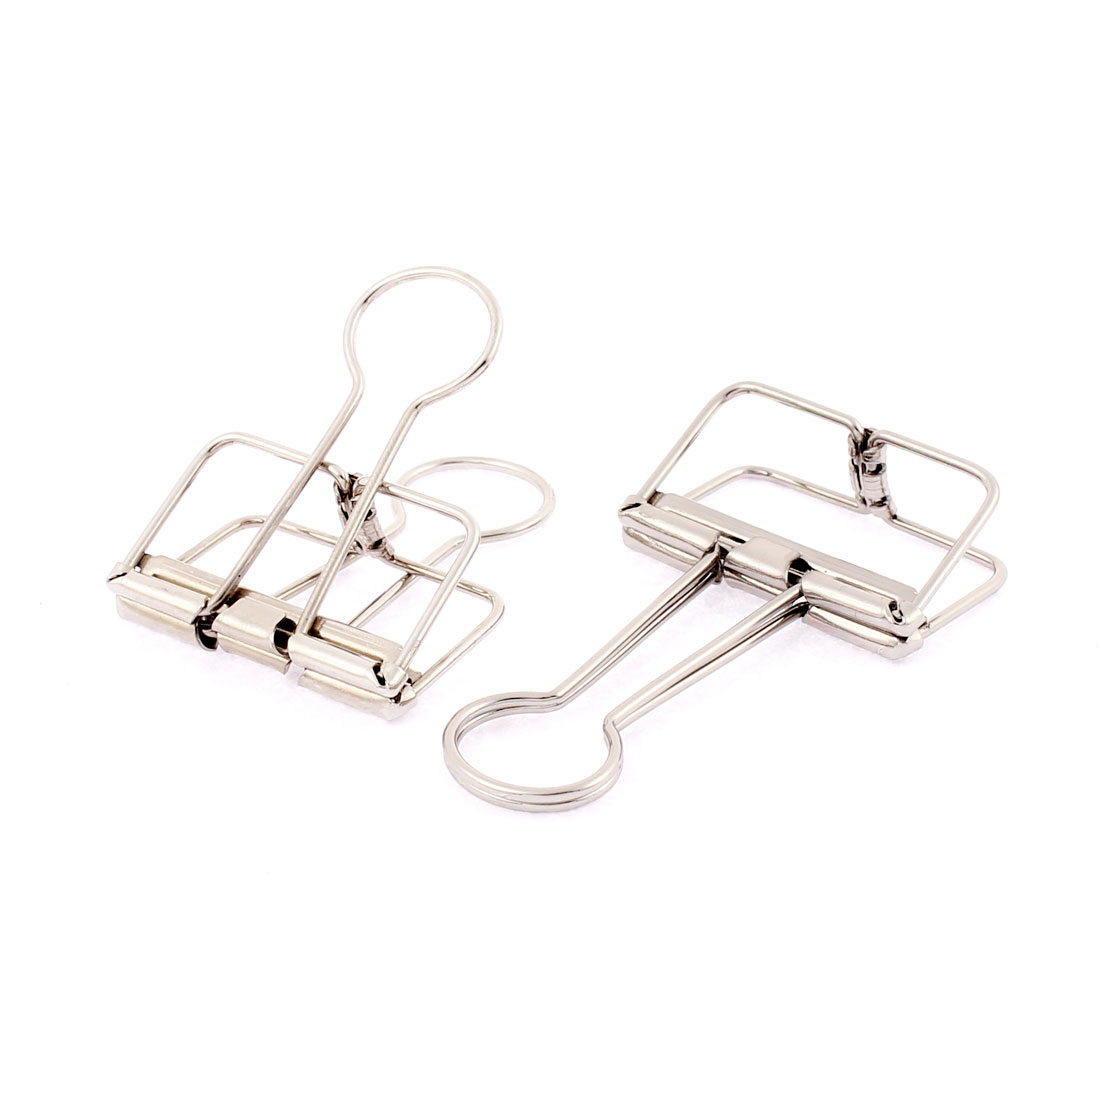 Silver Tone Metal 32mm Width Wire Binder Clips 2 Pcs